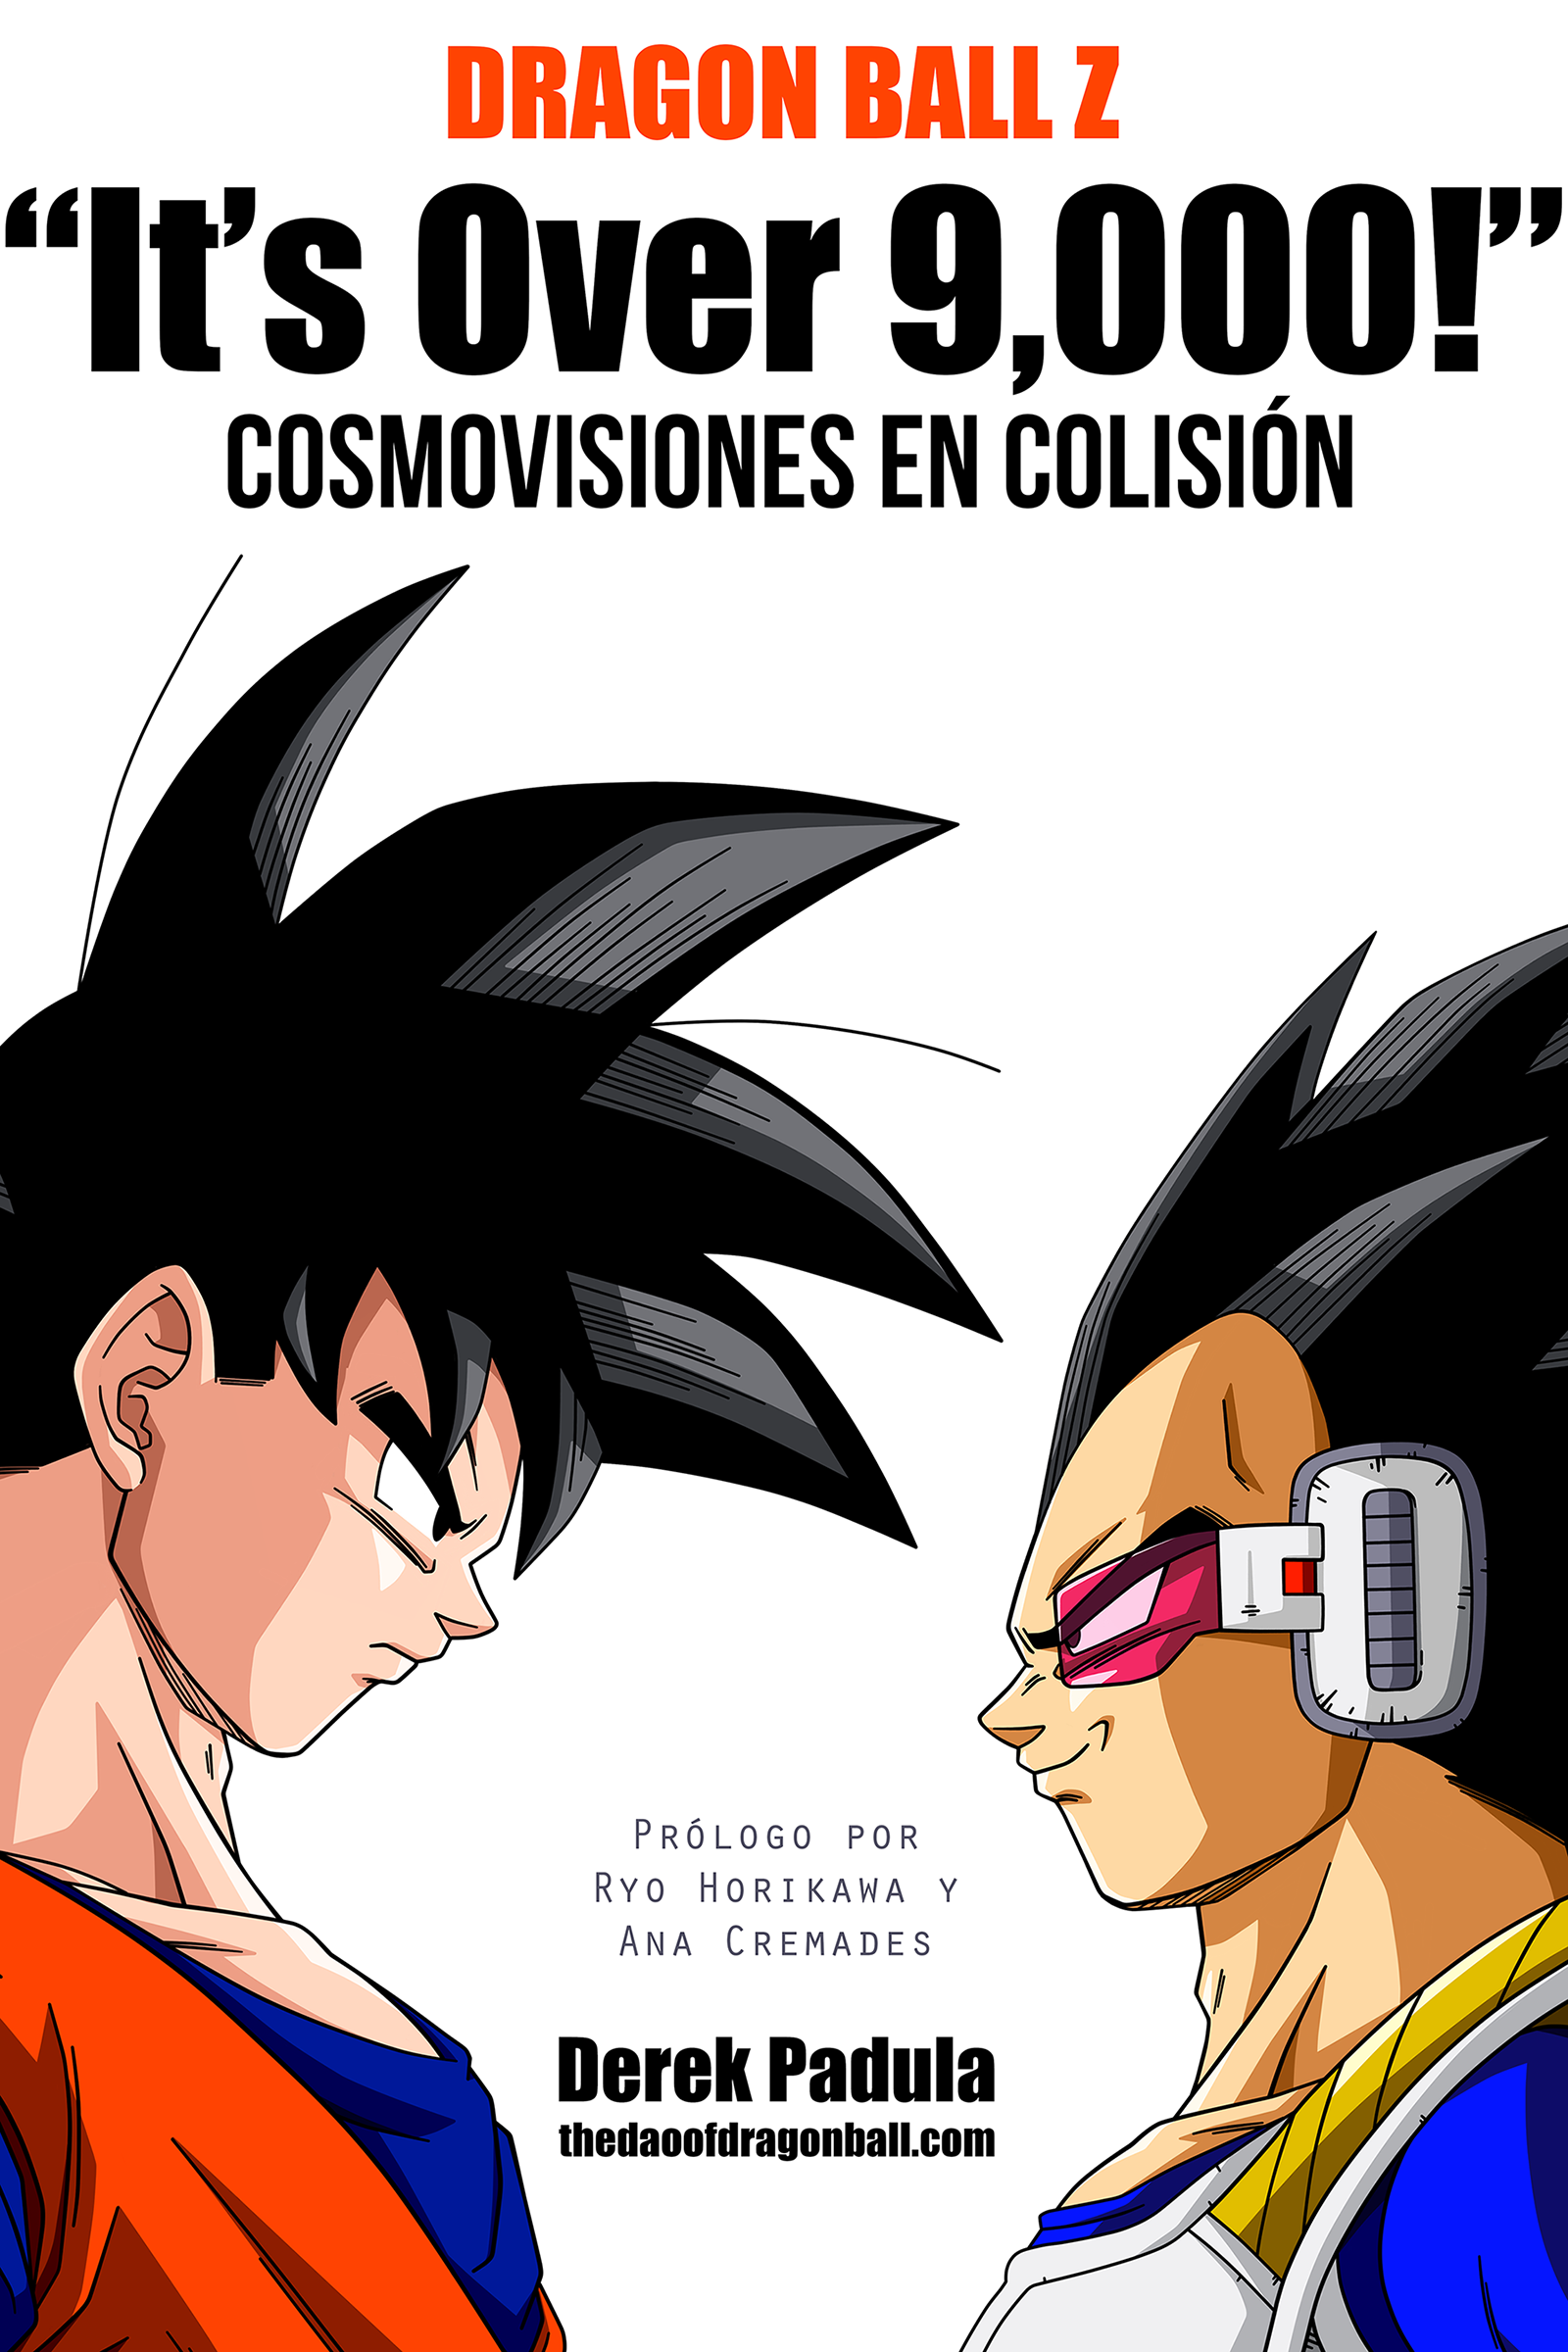 dragon-ball-z-its-over-9000-cosmovisiones-en-colision-1600